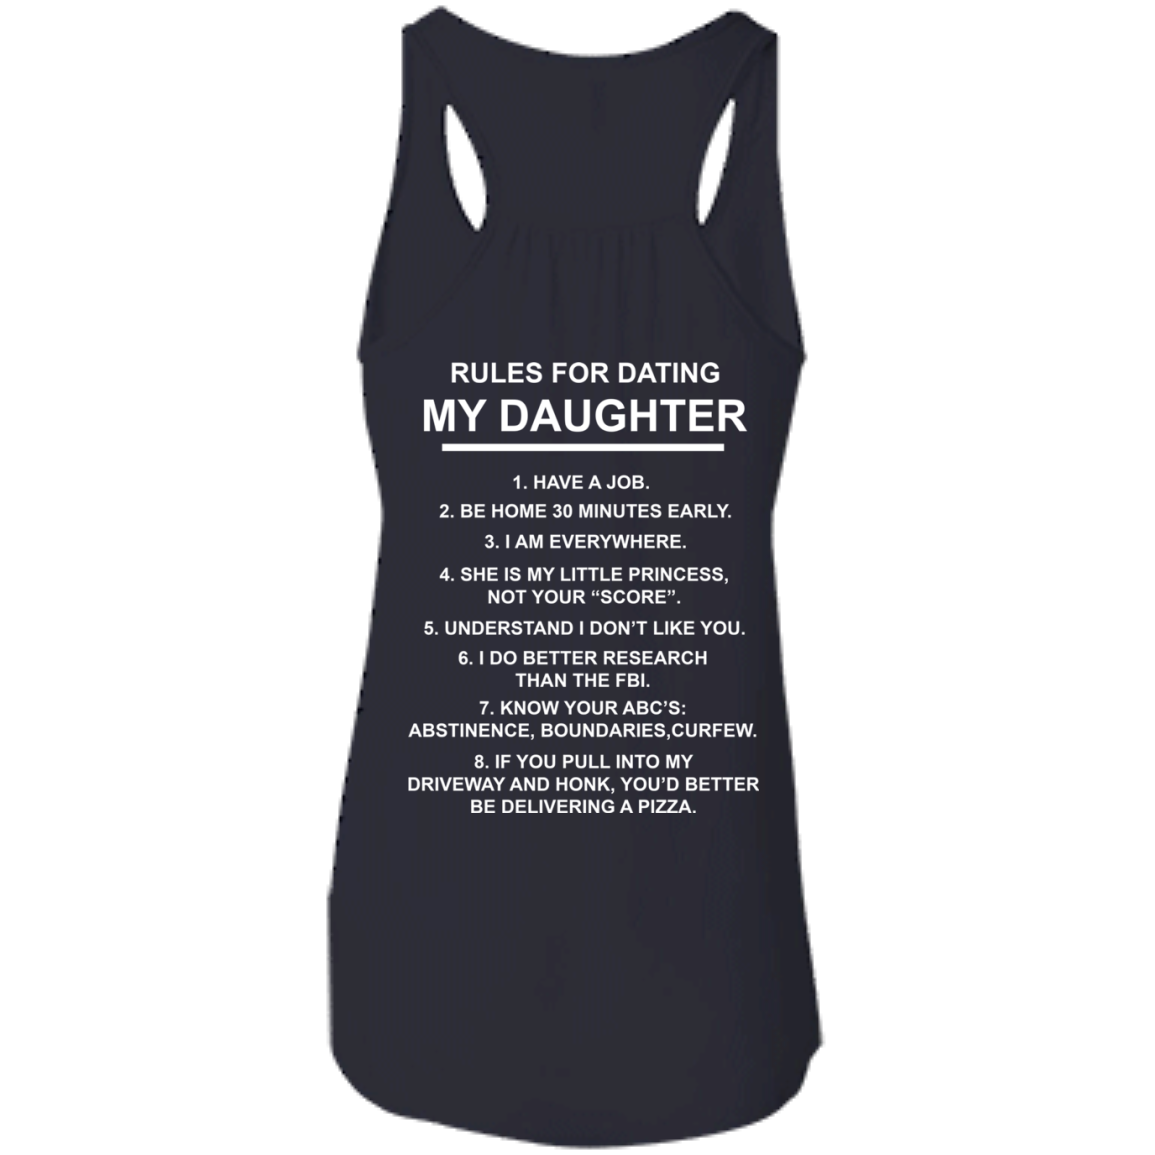 "rules for dating my daughter tee shirt gildan softstyle Rules for dating my daughter shirt have a job be home 30 minutes early i am everywhere she's my little princess not your ""score"" understand i don't like you."